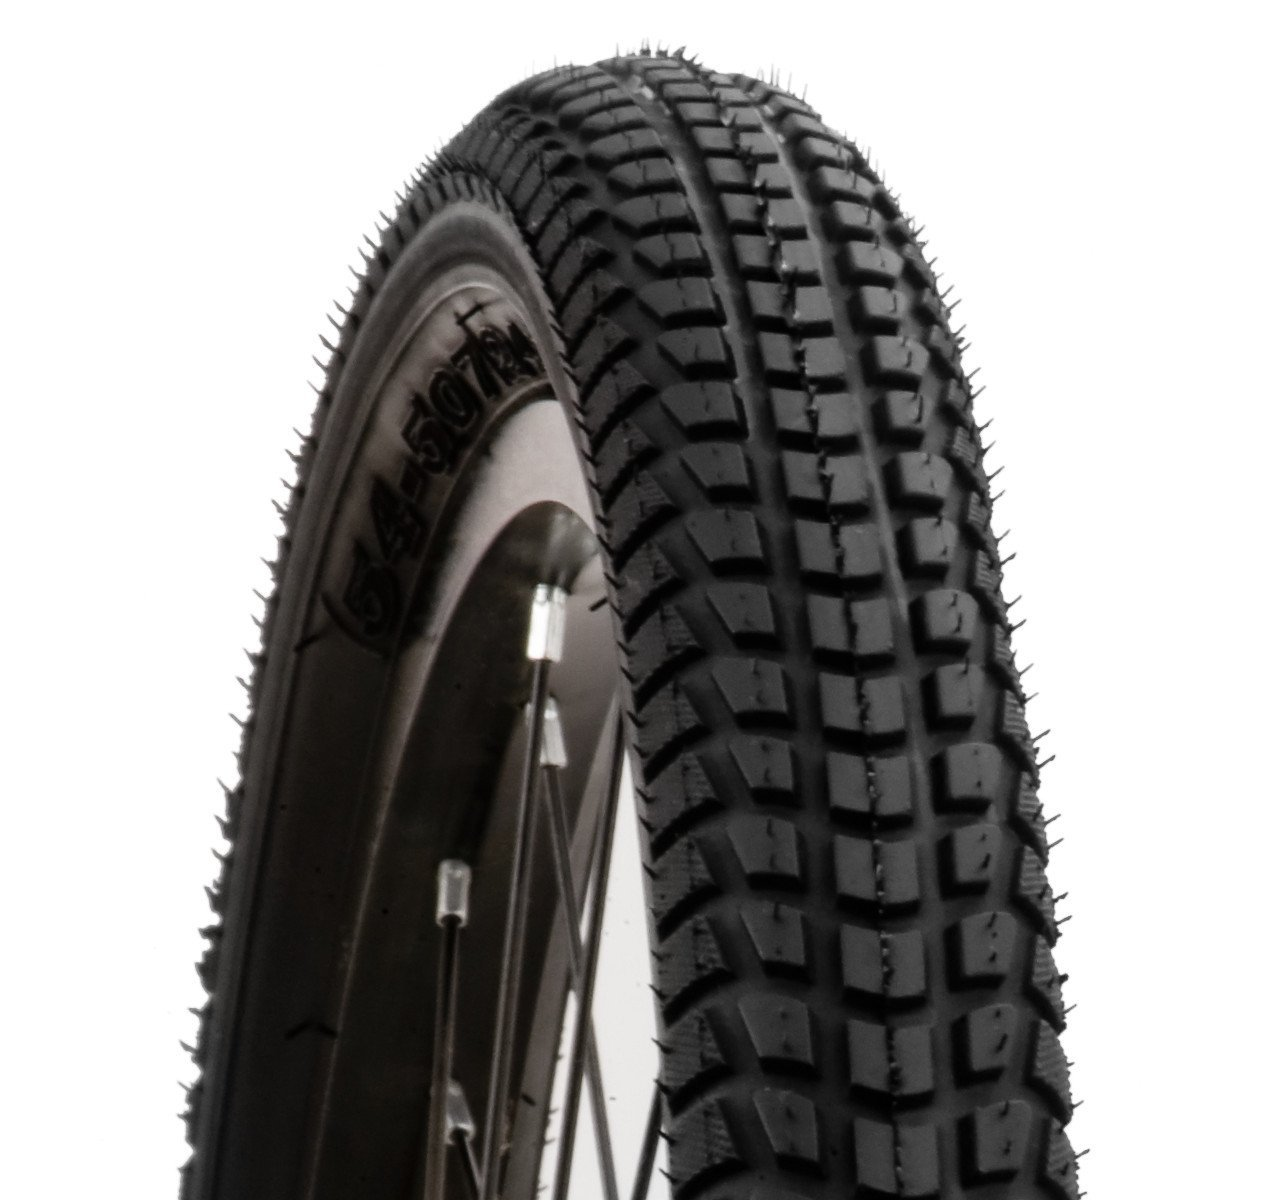 Maxxis Padrone Tubeless Ready Road Tire 700x23 Folding 170 TPI DC Flat Protect